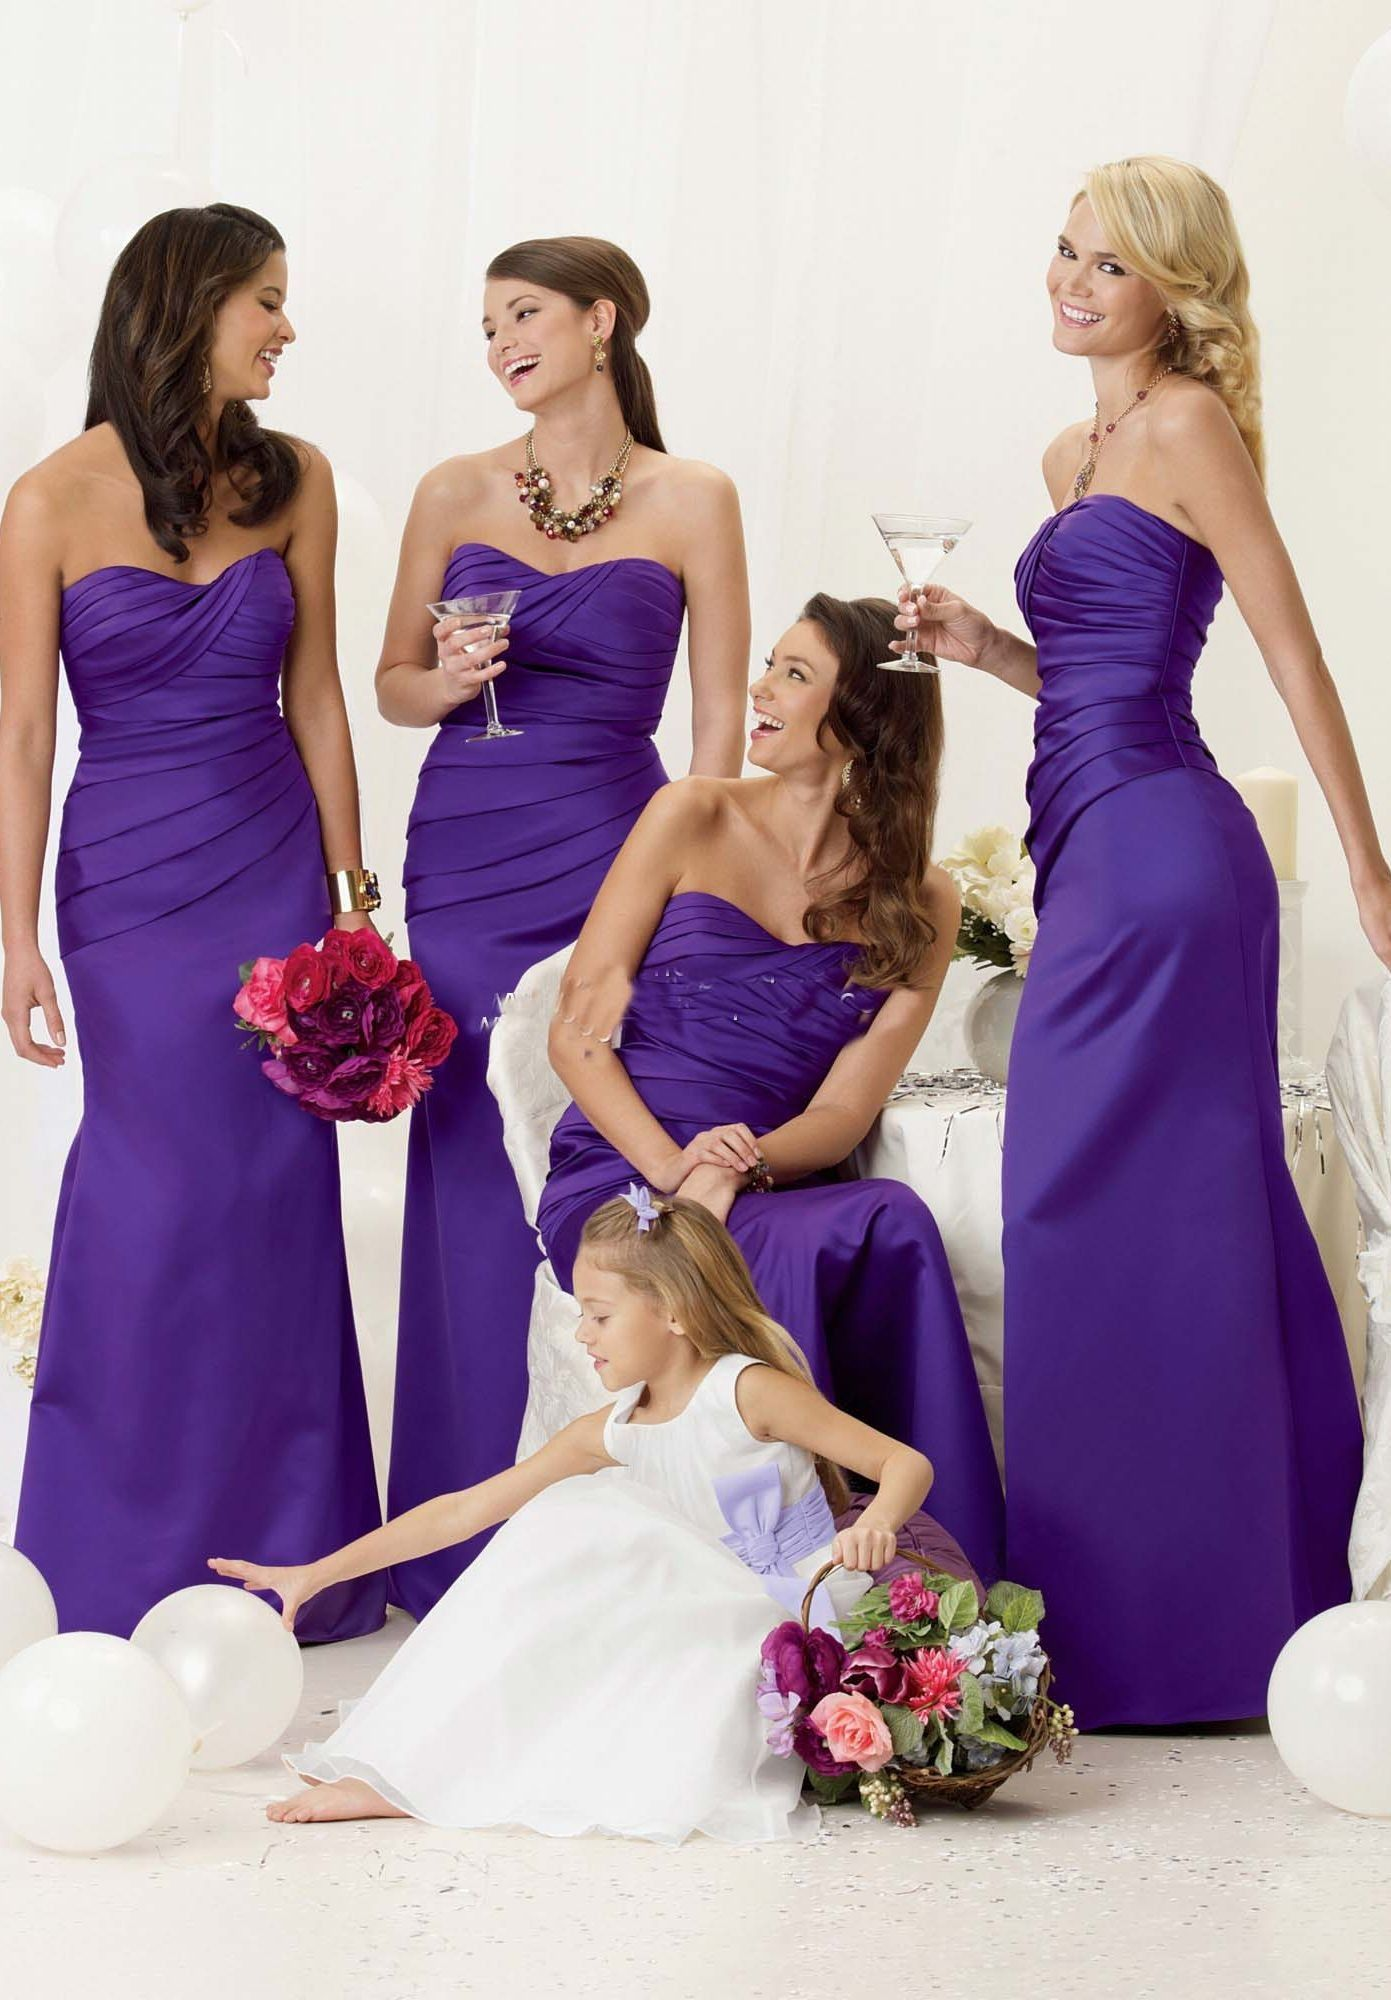 Check out some more mermaid dresses for bridesmaids bridesmaids check out some more mermaid dresses for bridesmaids ombrellifo Choice Image